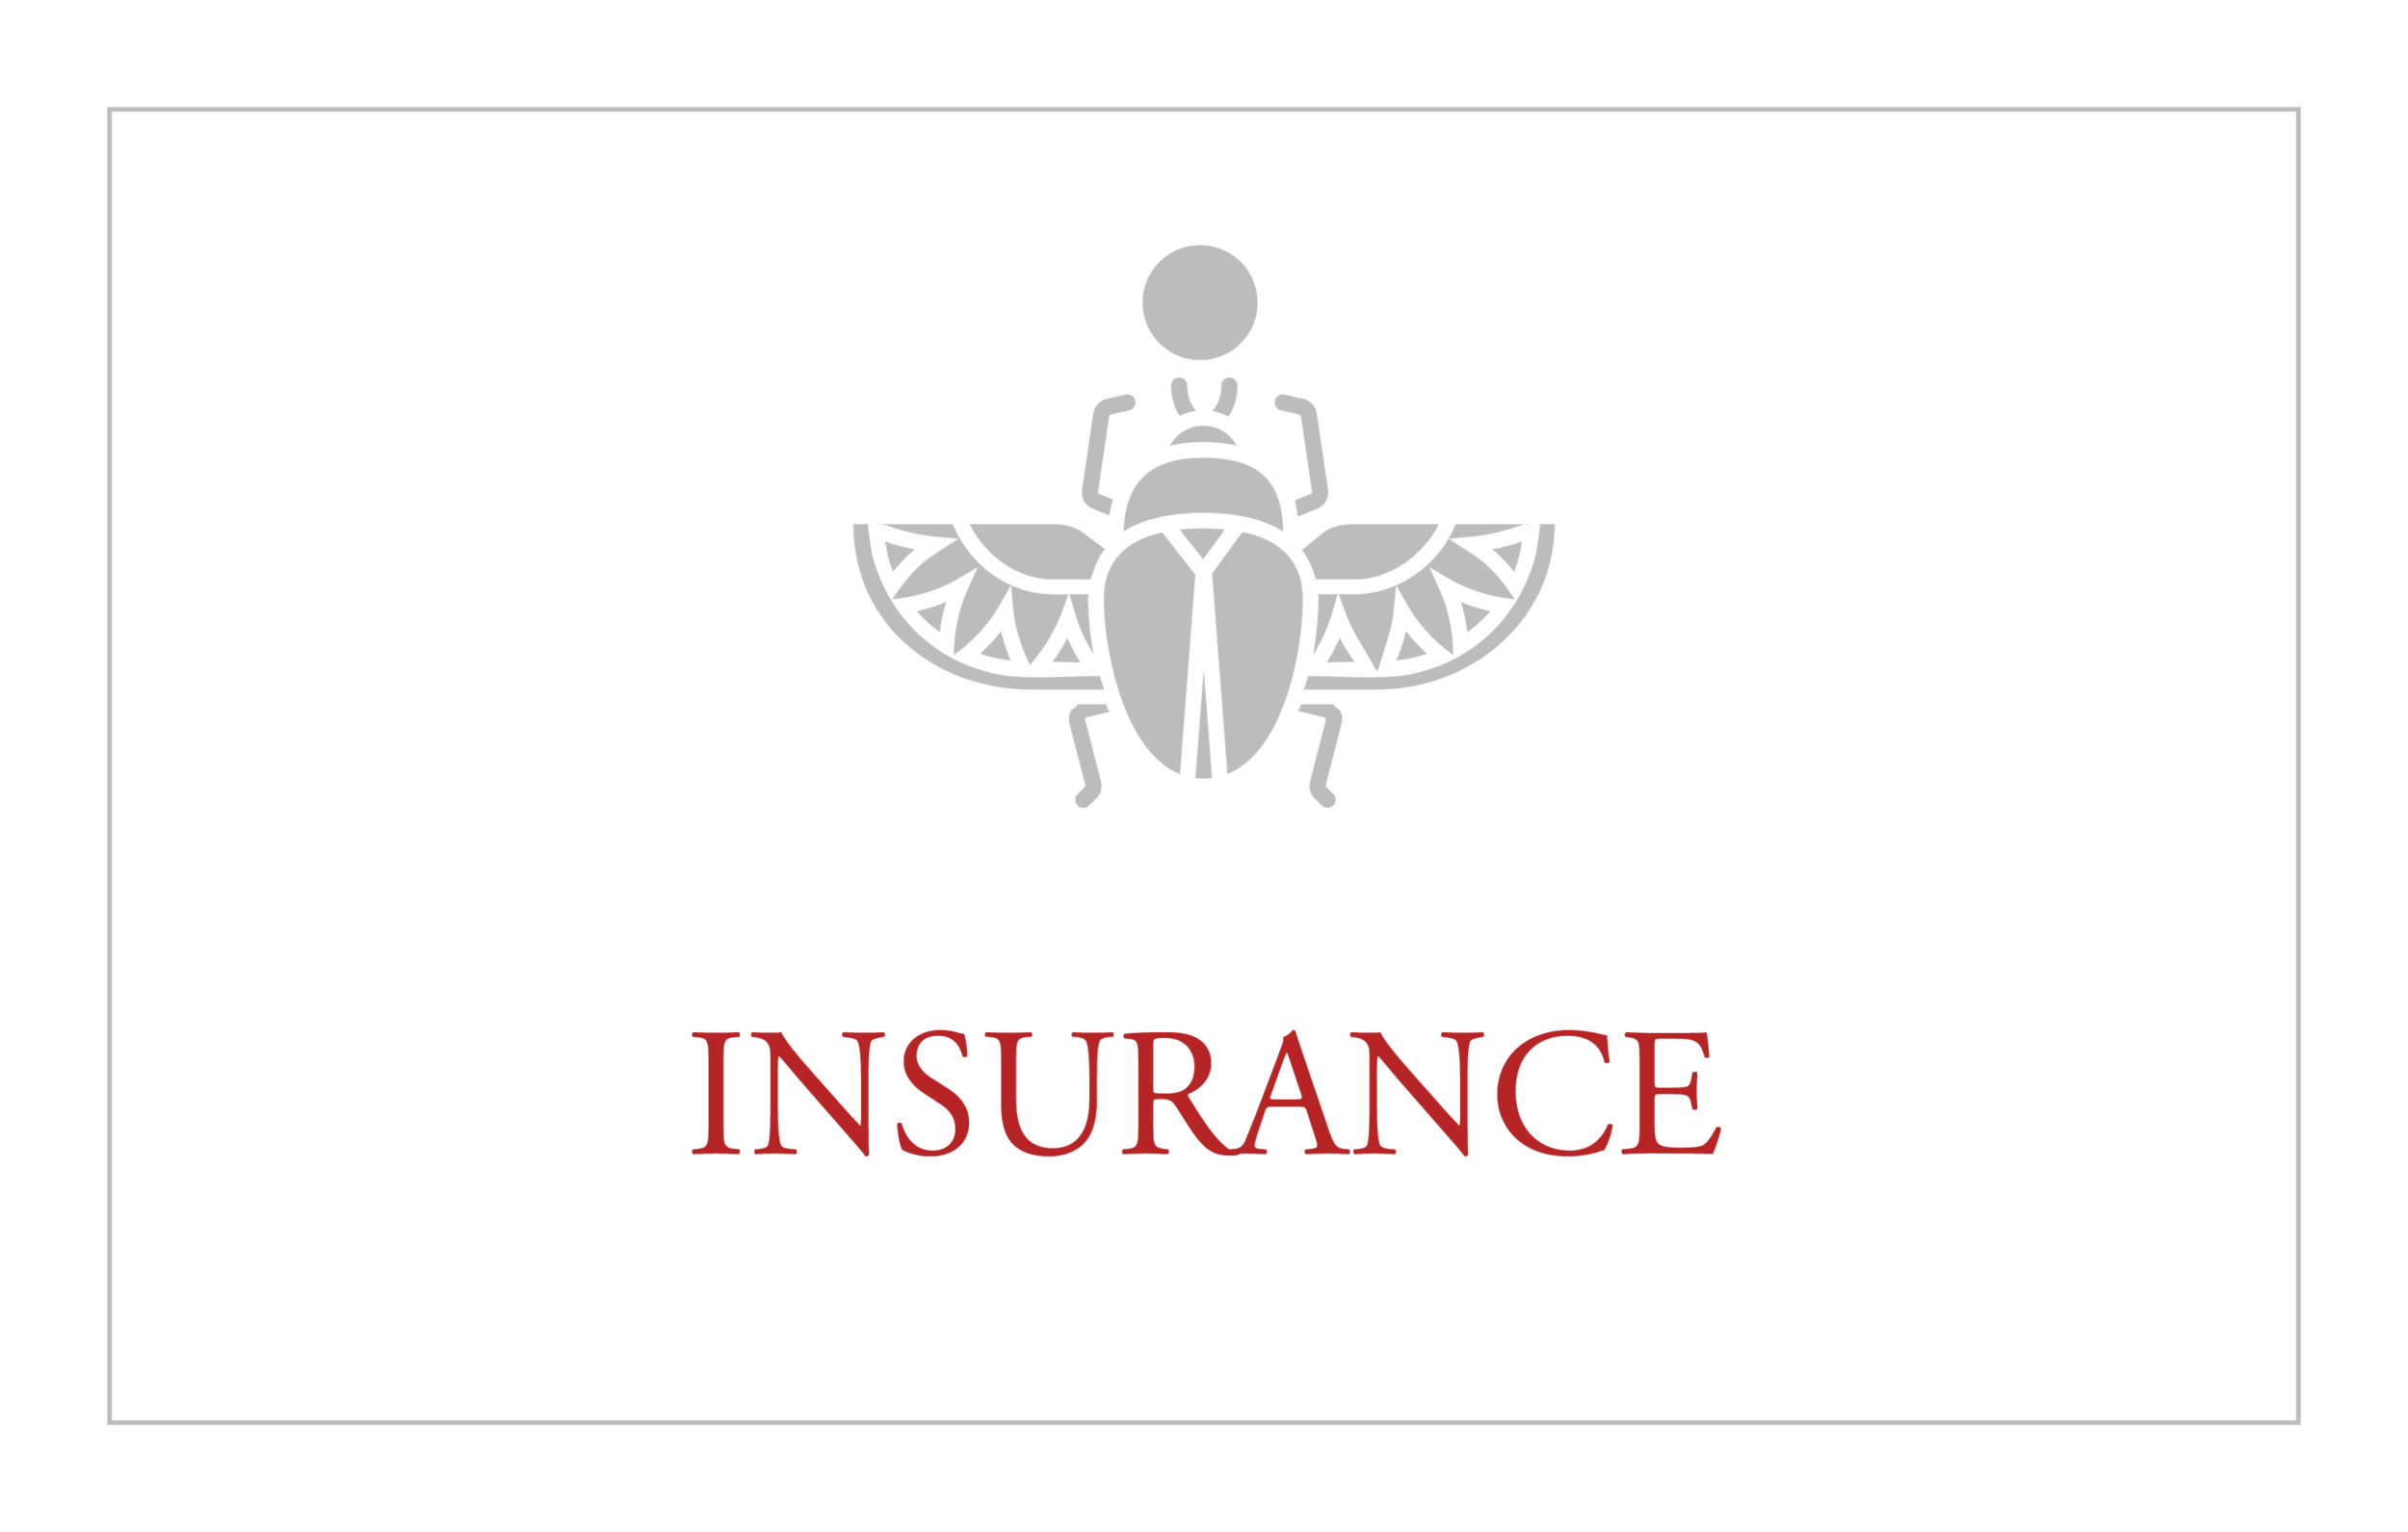 Insurance-01.png